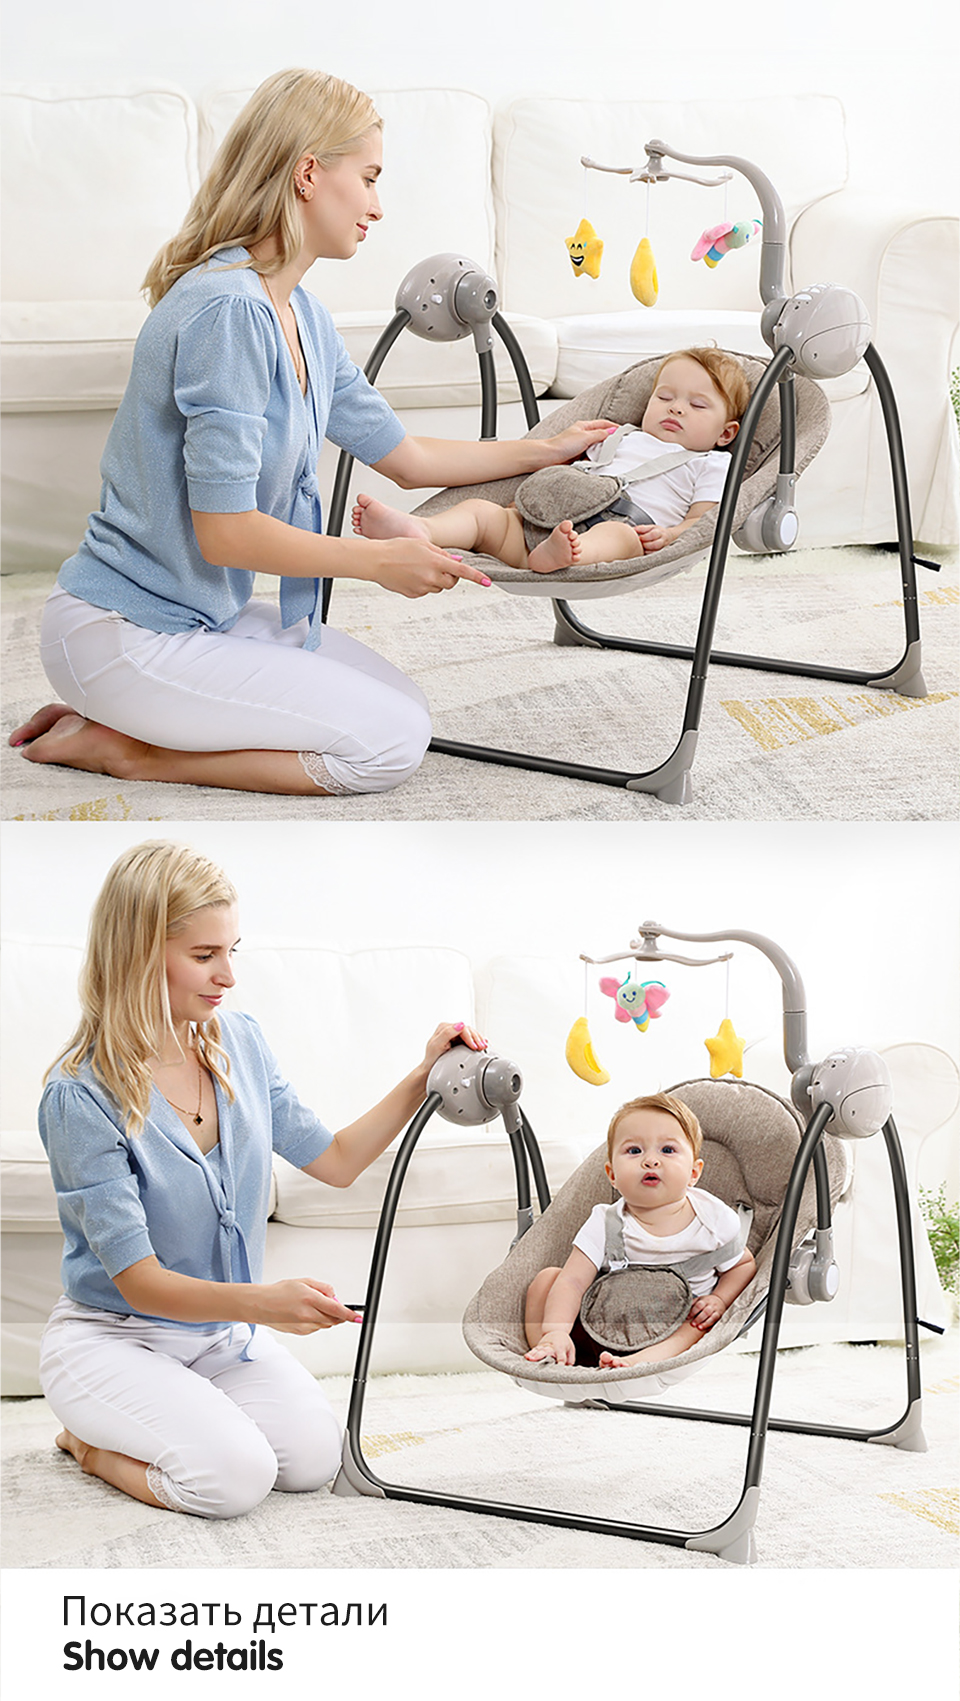 H7e2a74c4158b4763b3c72d3015d90fc0z IMBABY New Baby Electric Rocking Chair Cradle Foldable Baby Comfort Recliner for Newborn Bebe Safety Comfort Rocker Swings Chair